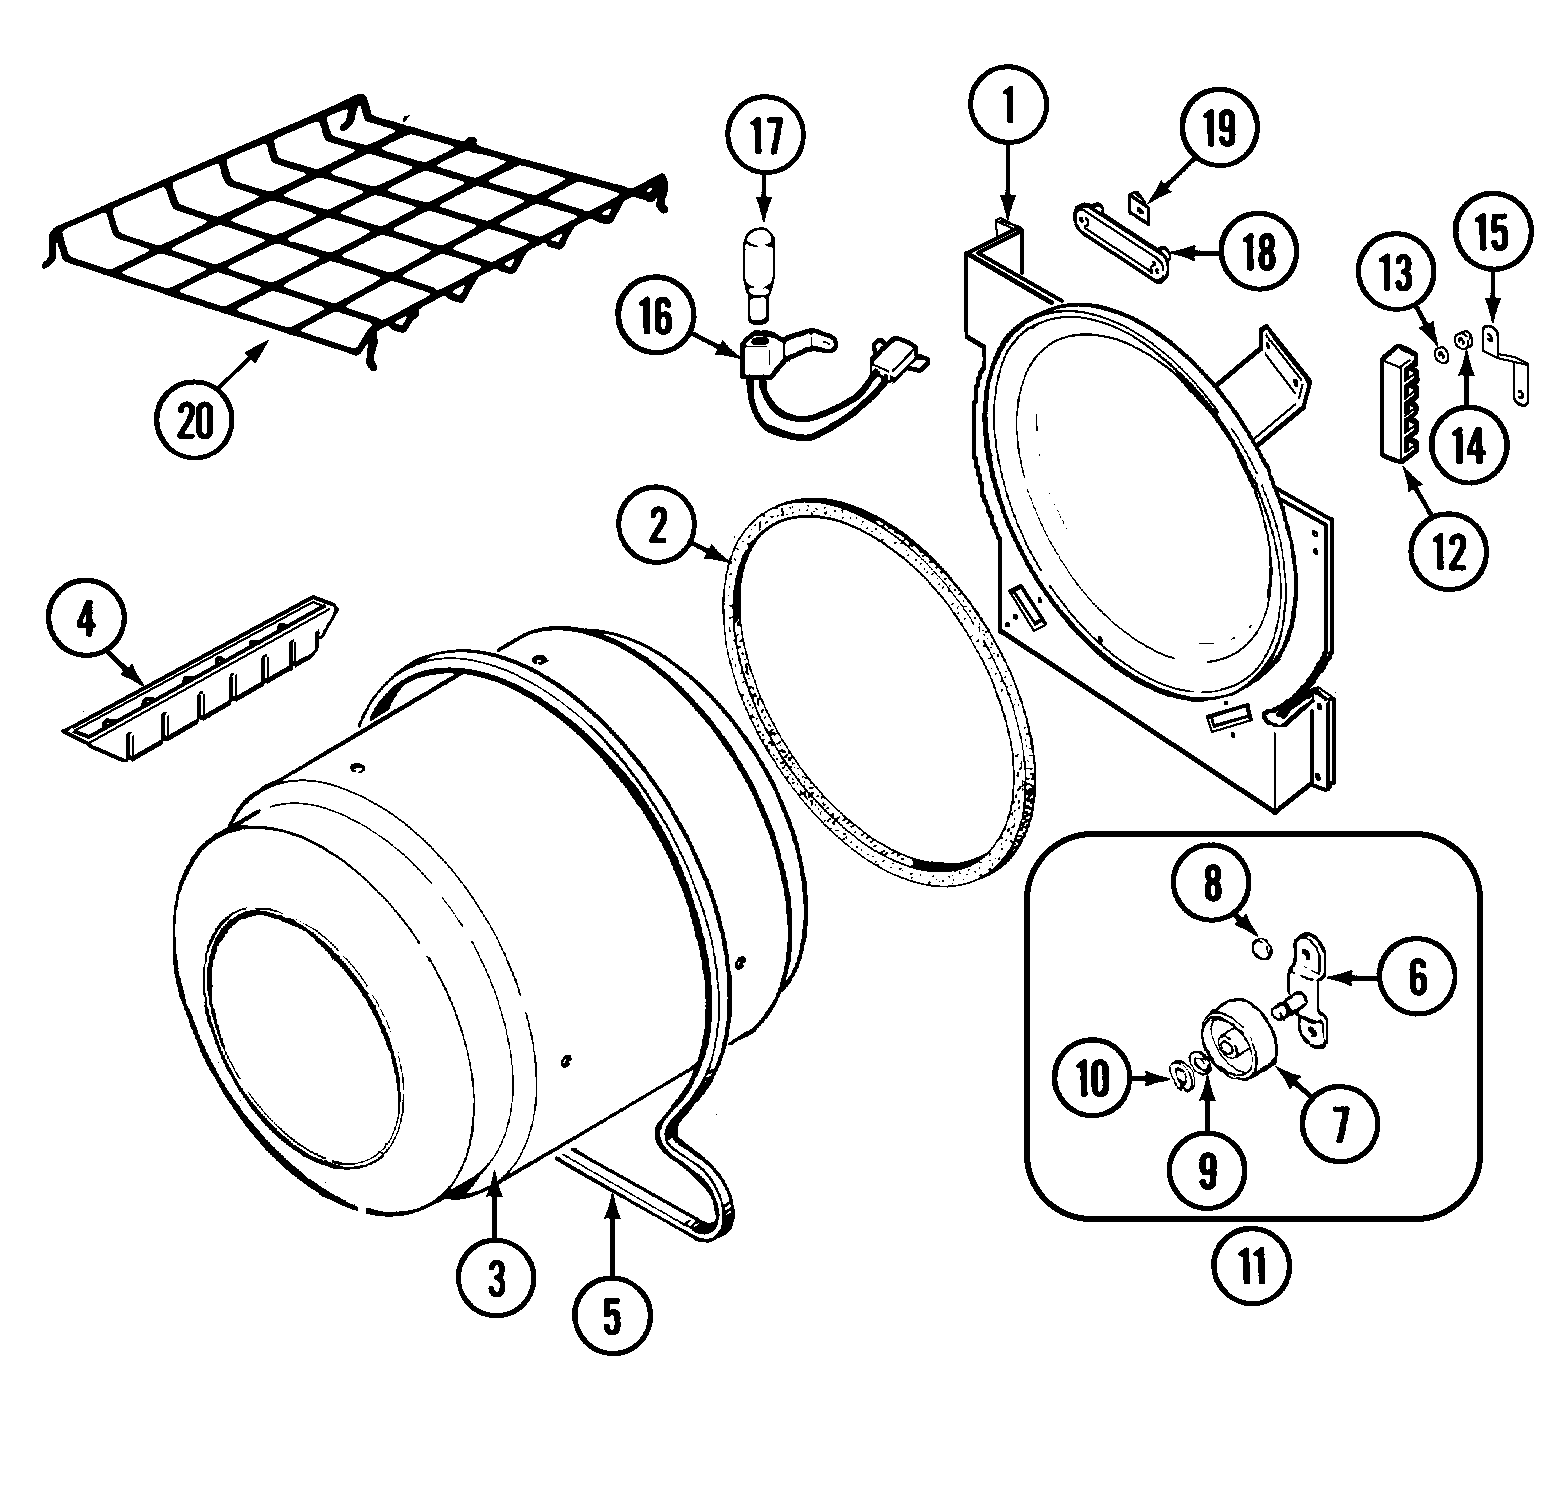 TUMBLER Diagram & Parts List for Model lnc8766b71 Admiral